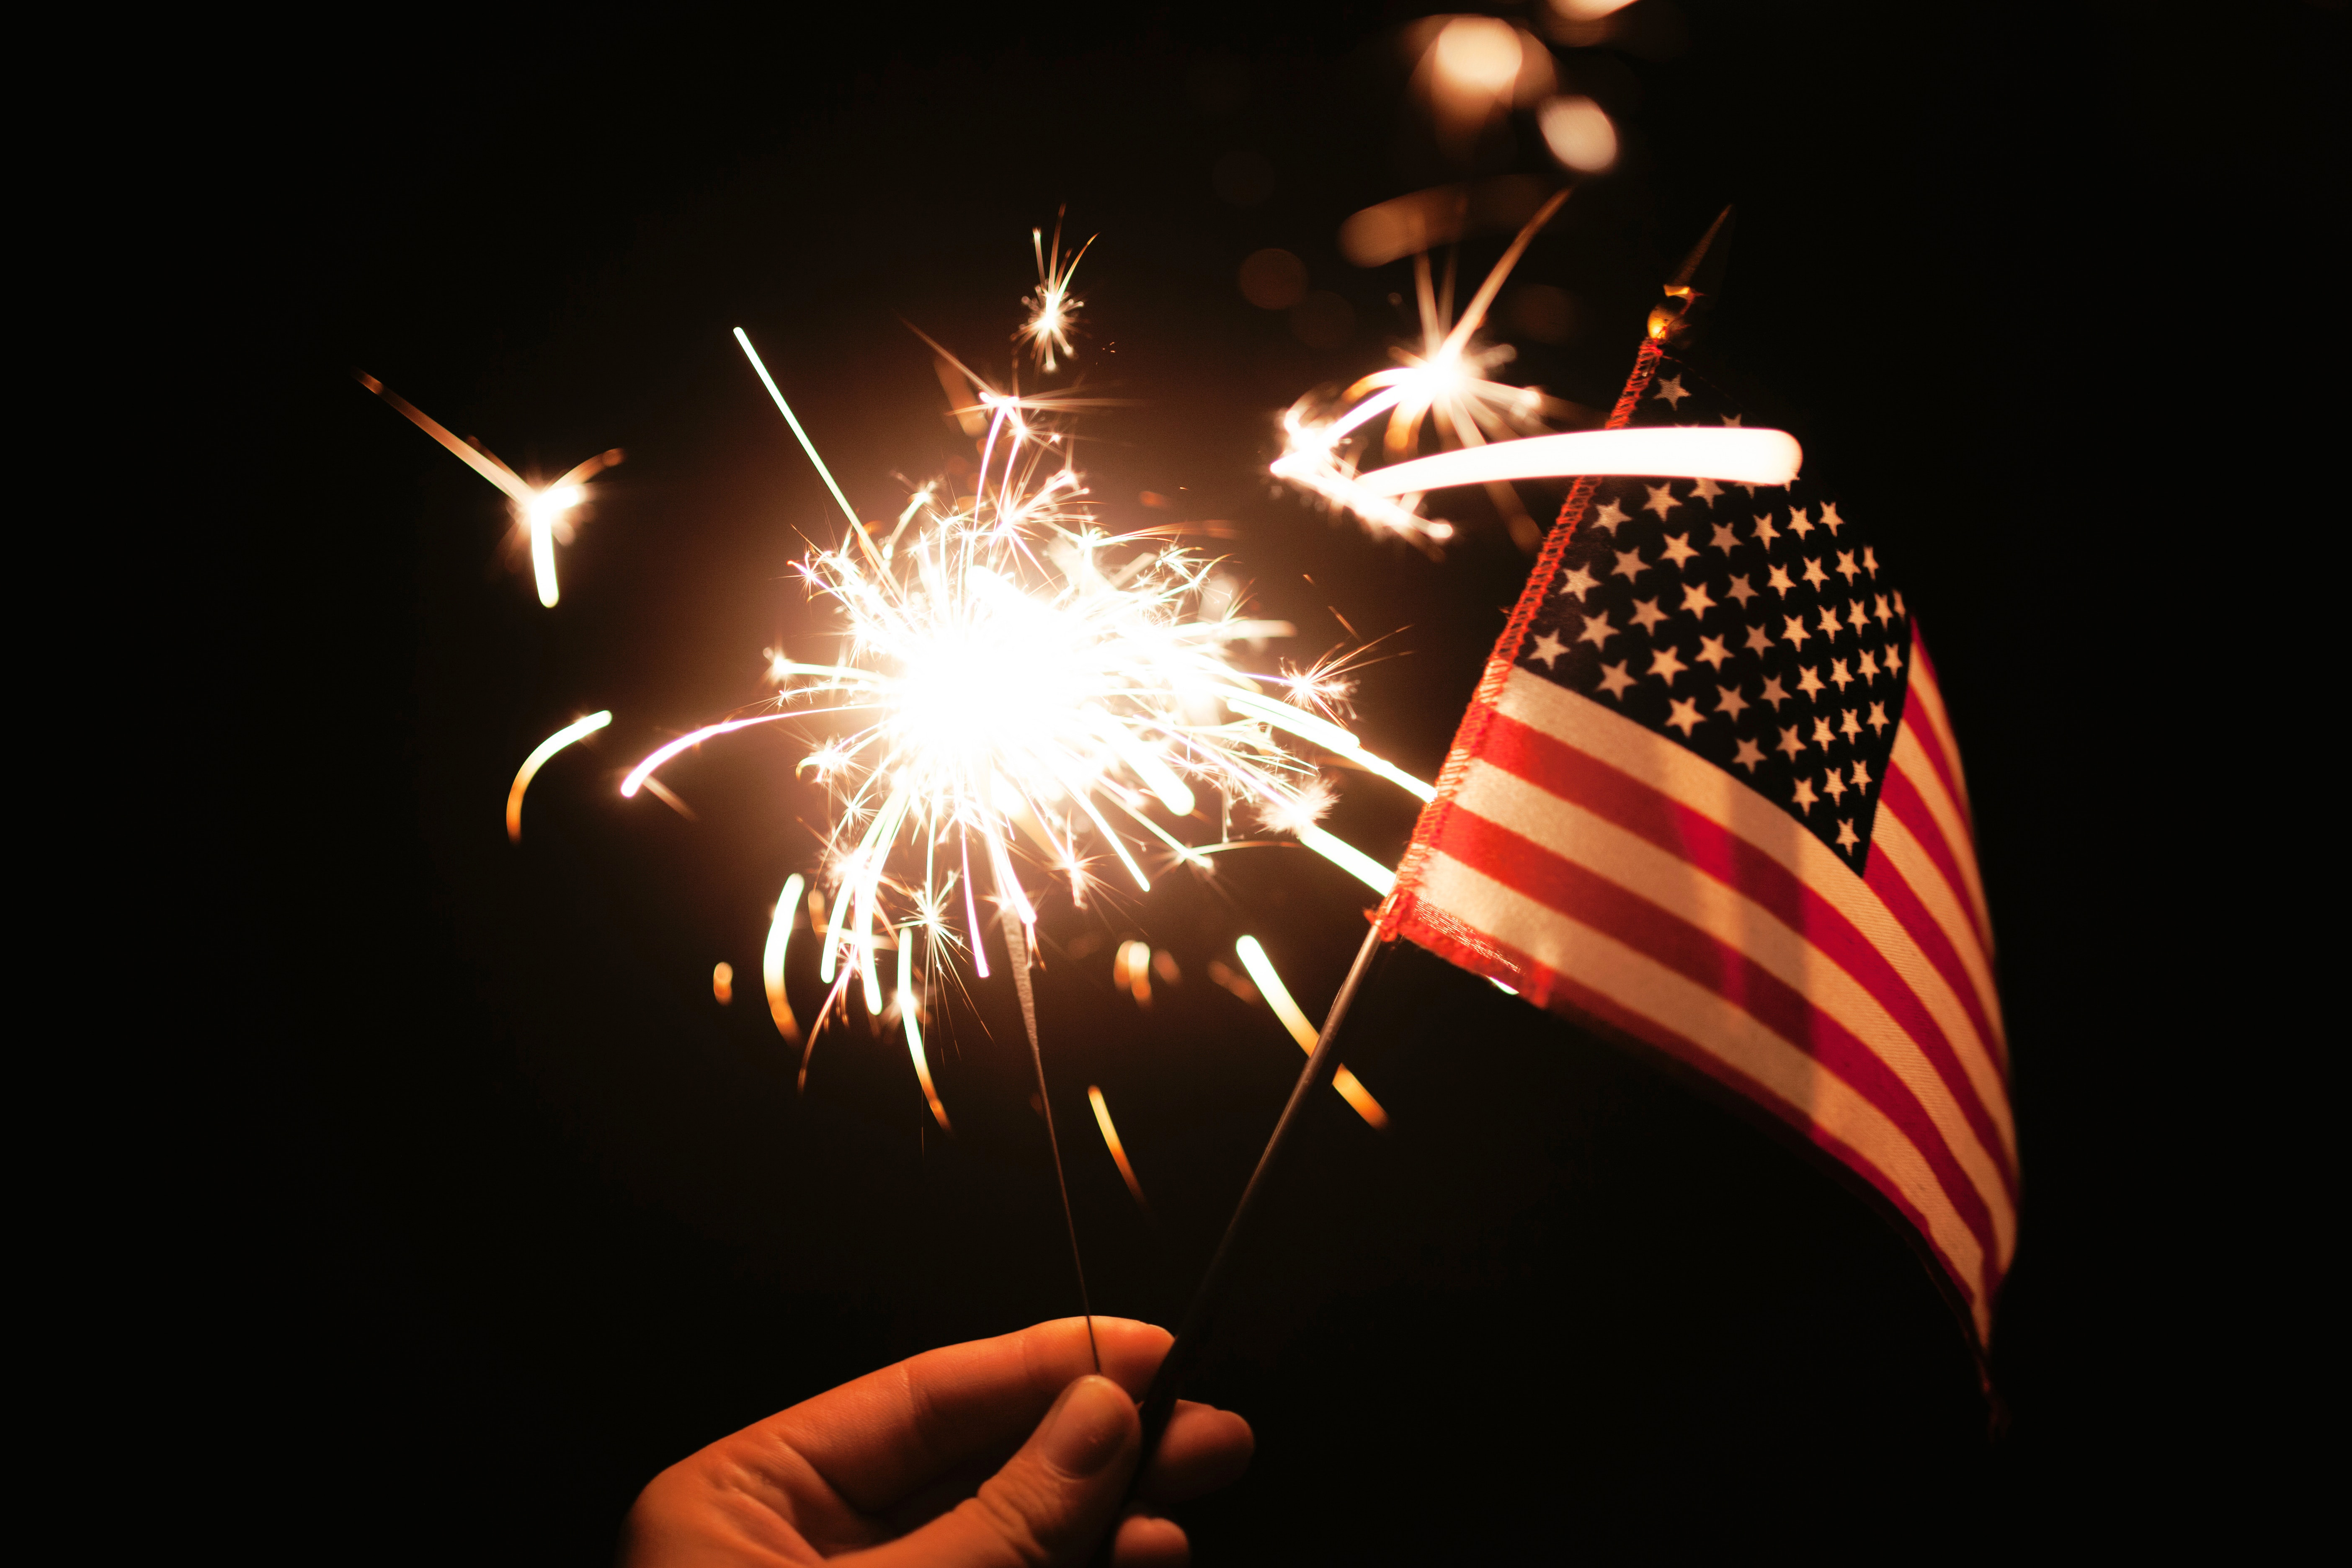 Fireworks And American Flag On 4th Of July Image Free Stock Photo